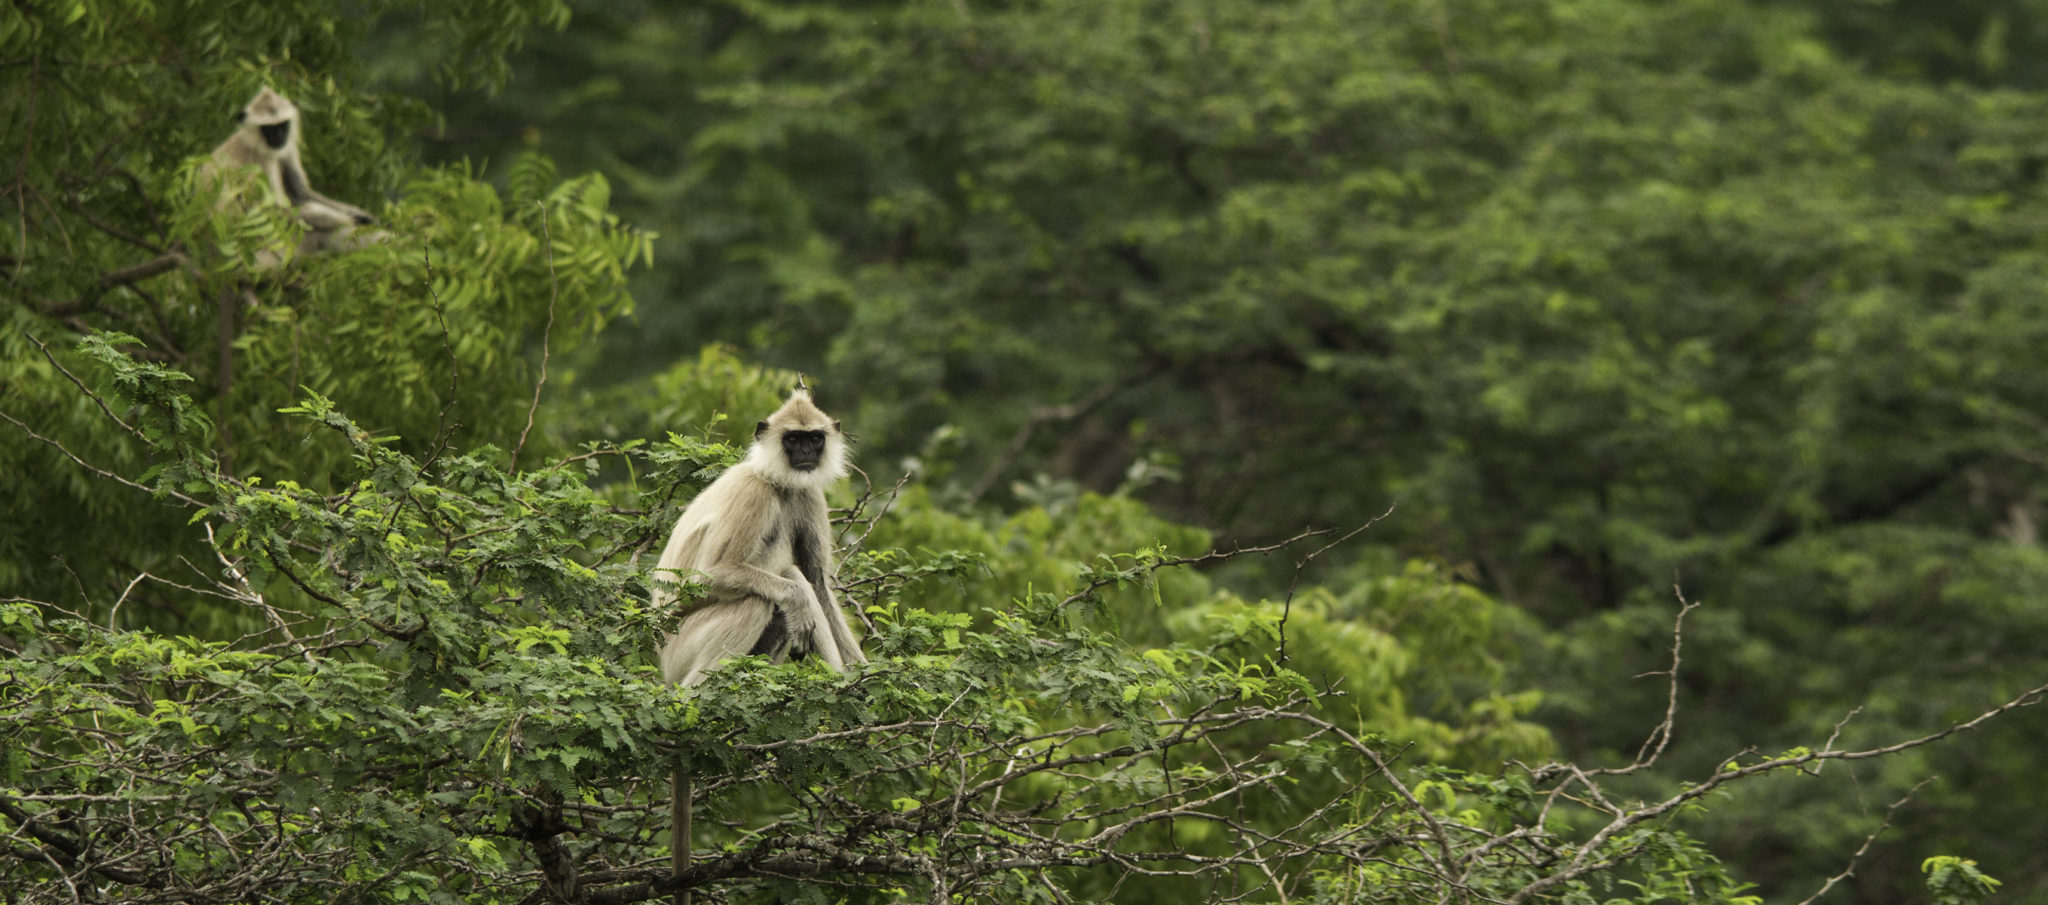 A watchful Hanuman Langur perched in the forest canopy, Chinnar Forest.